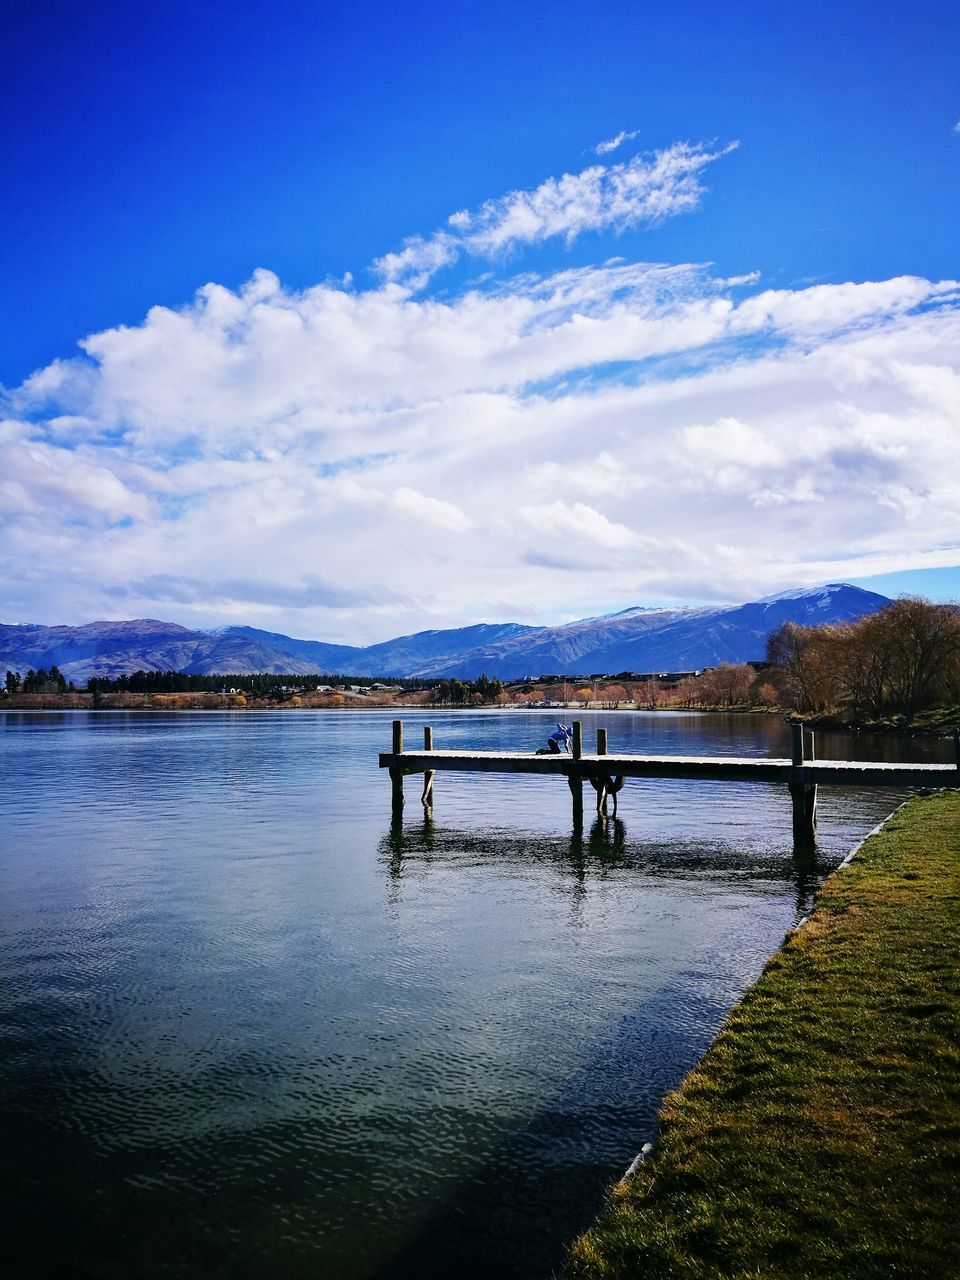 water, sky, cloud - sky, river, scenics, blue, mountain, nature, tranquility, tranquil scene, beauty in nature, outdoors, day, mountain range, bridge - man made structure, no people, architecture, tree